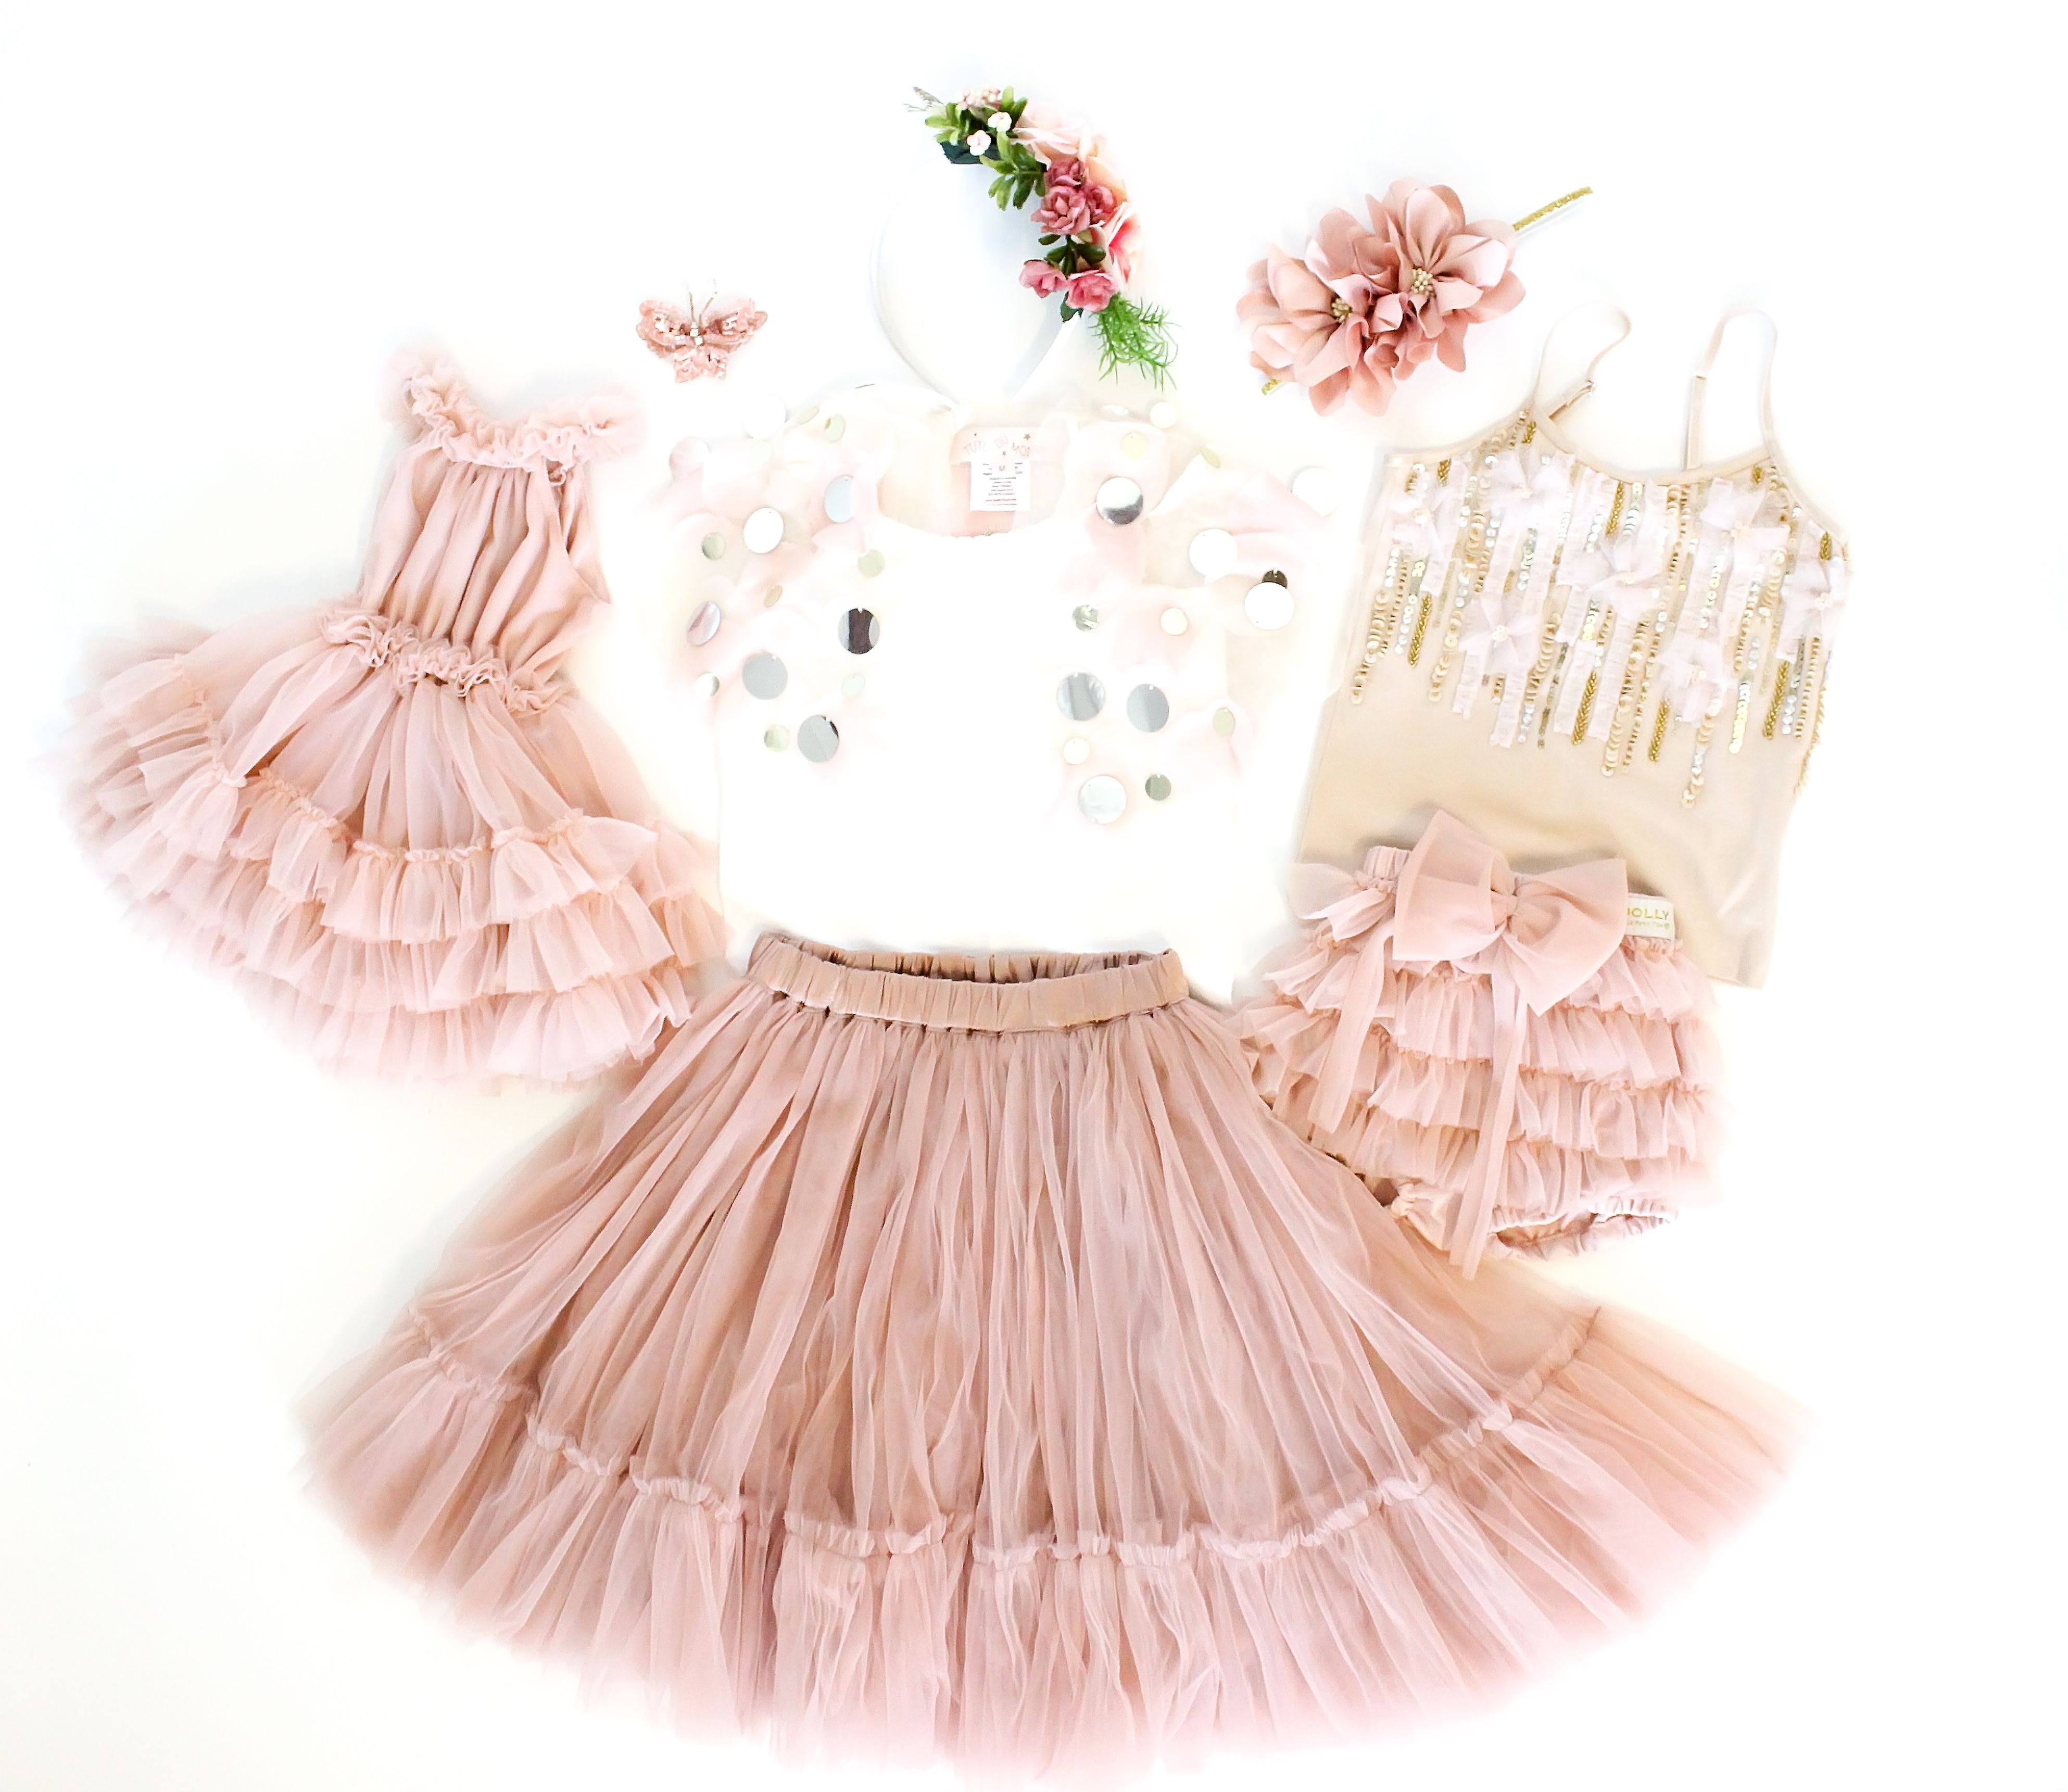 Children s photo style family photo outfits sister sets tutu